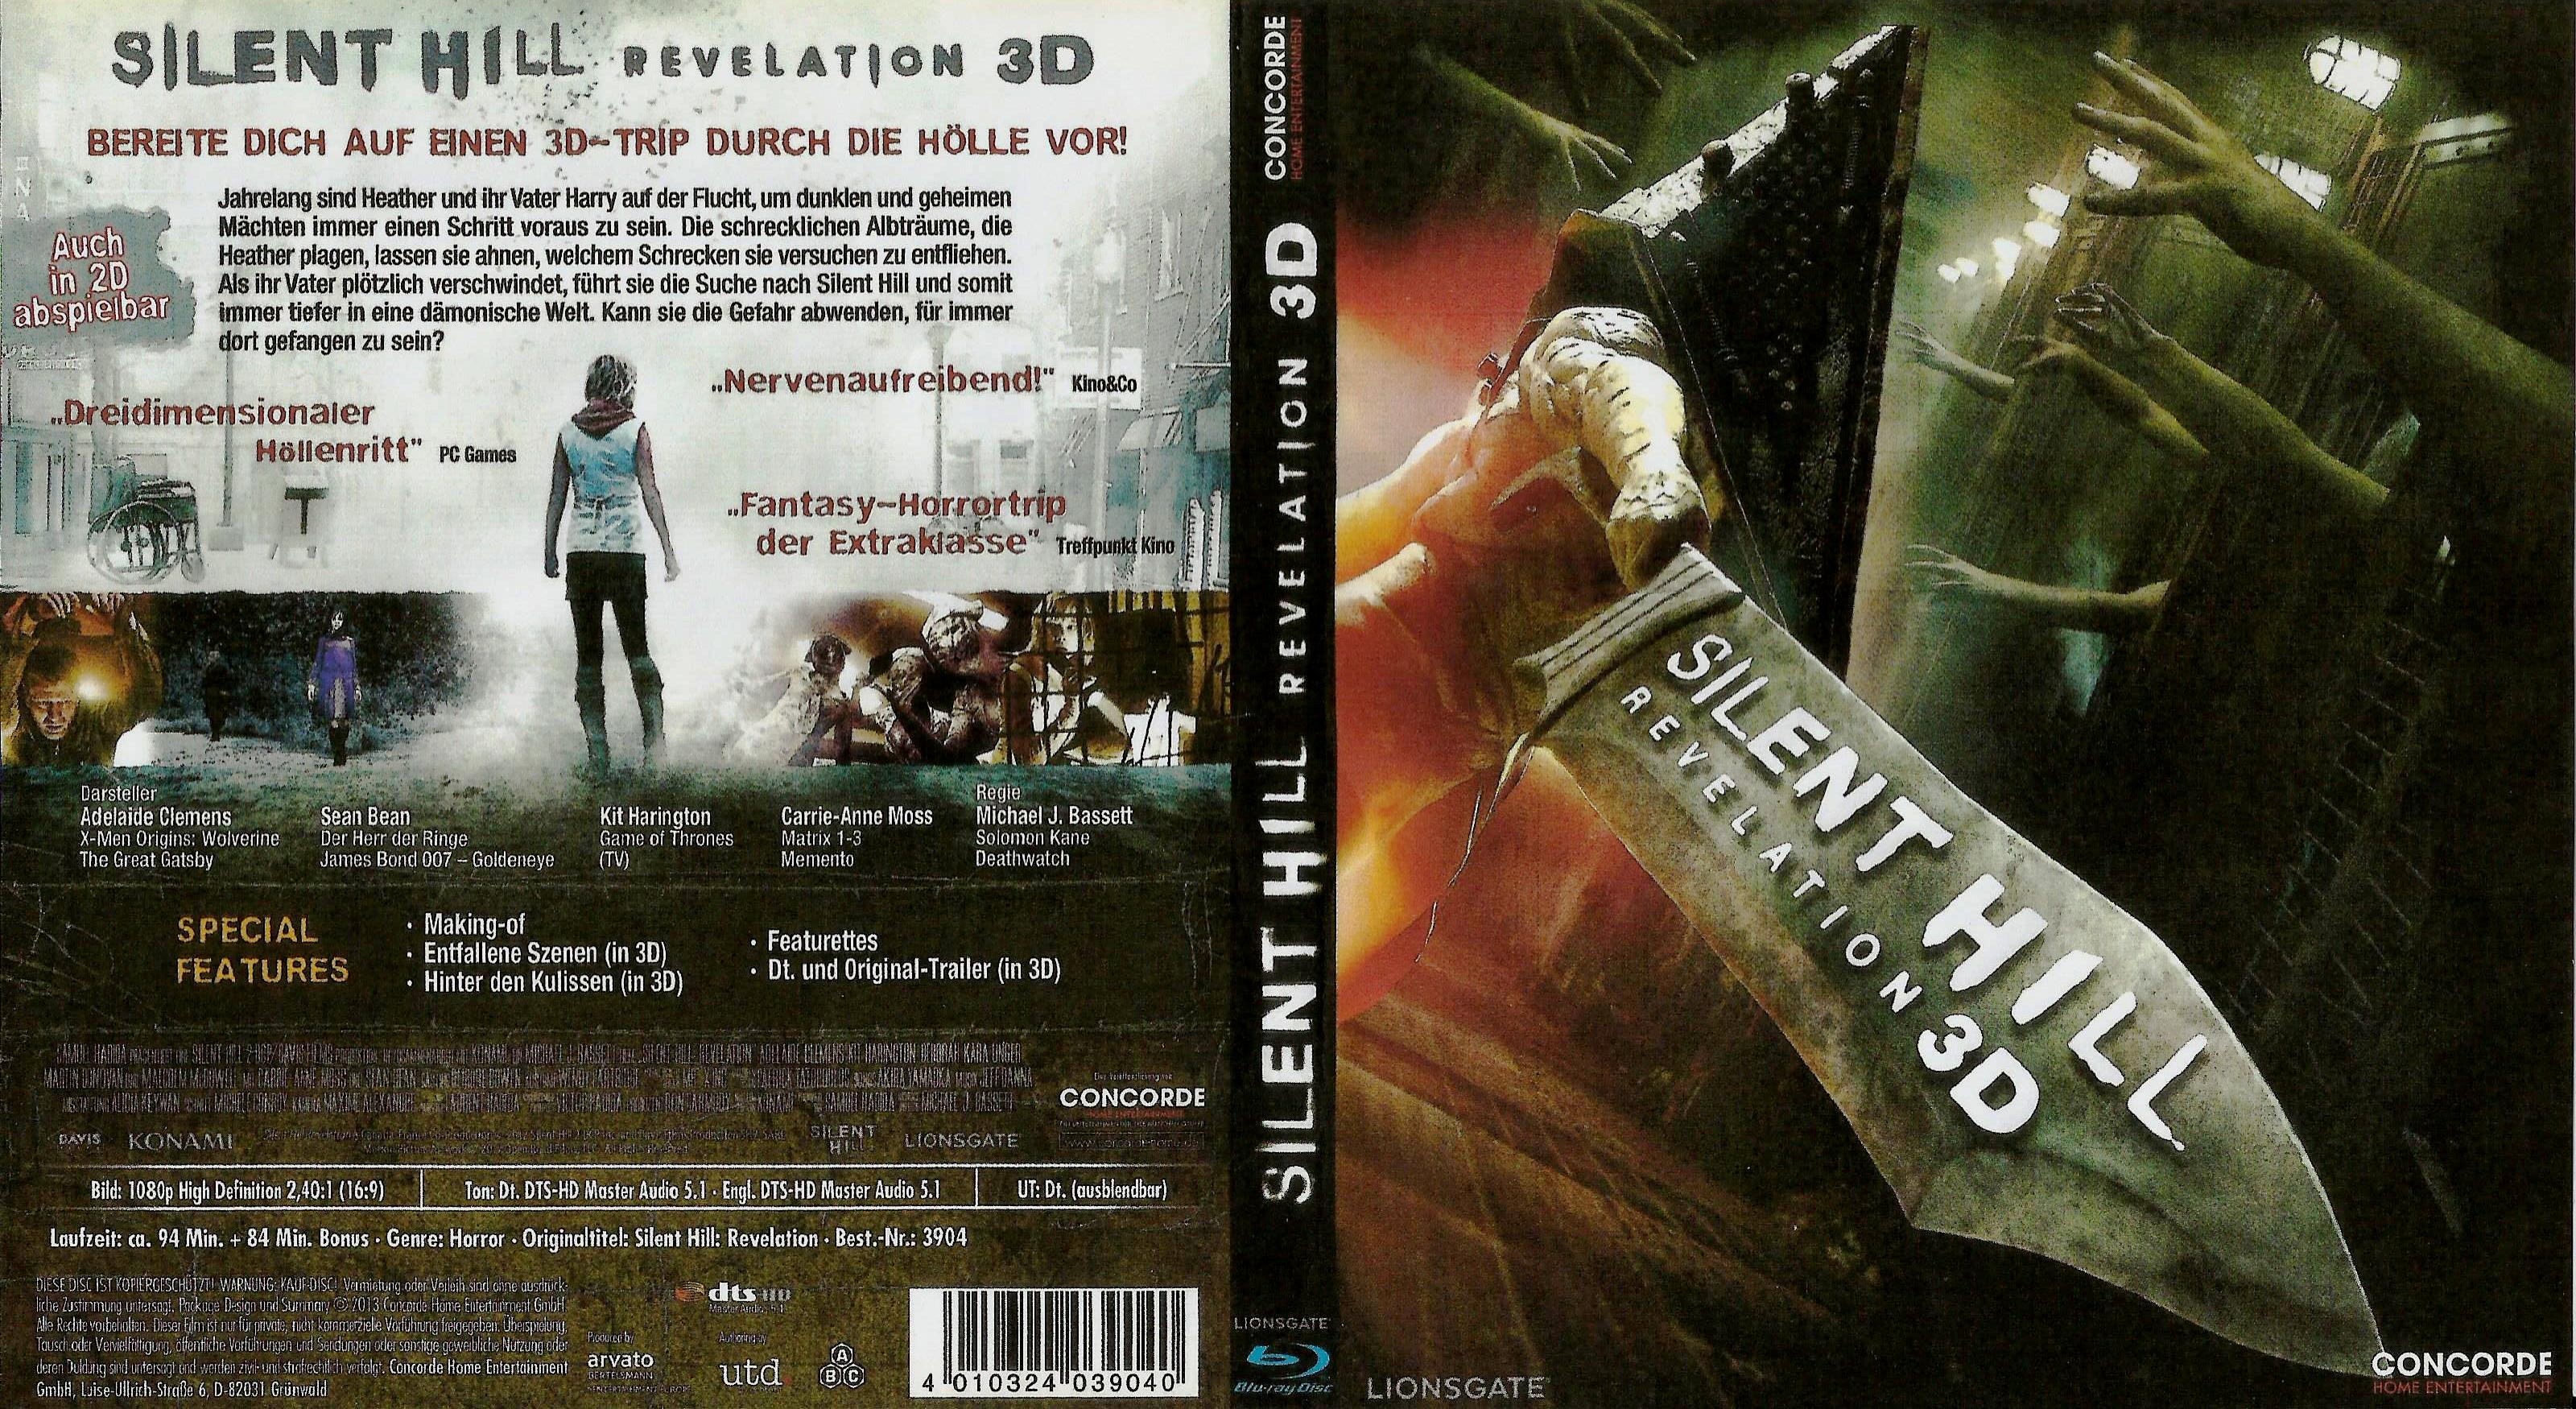 Silent Hill Revelation 3d Blu Ray Dvd Covers Cover Century Over 500 000 Album Art Covers For Free